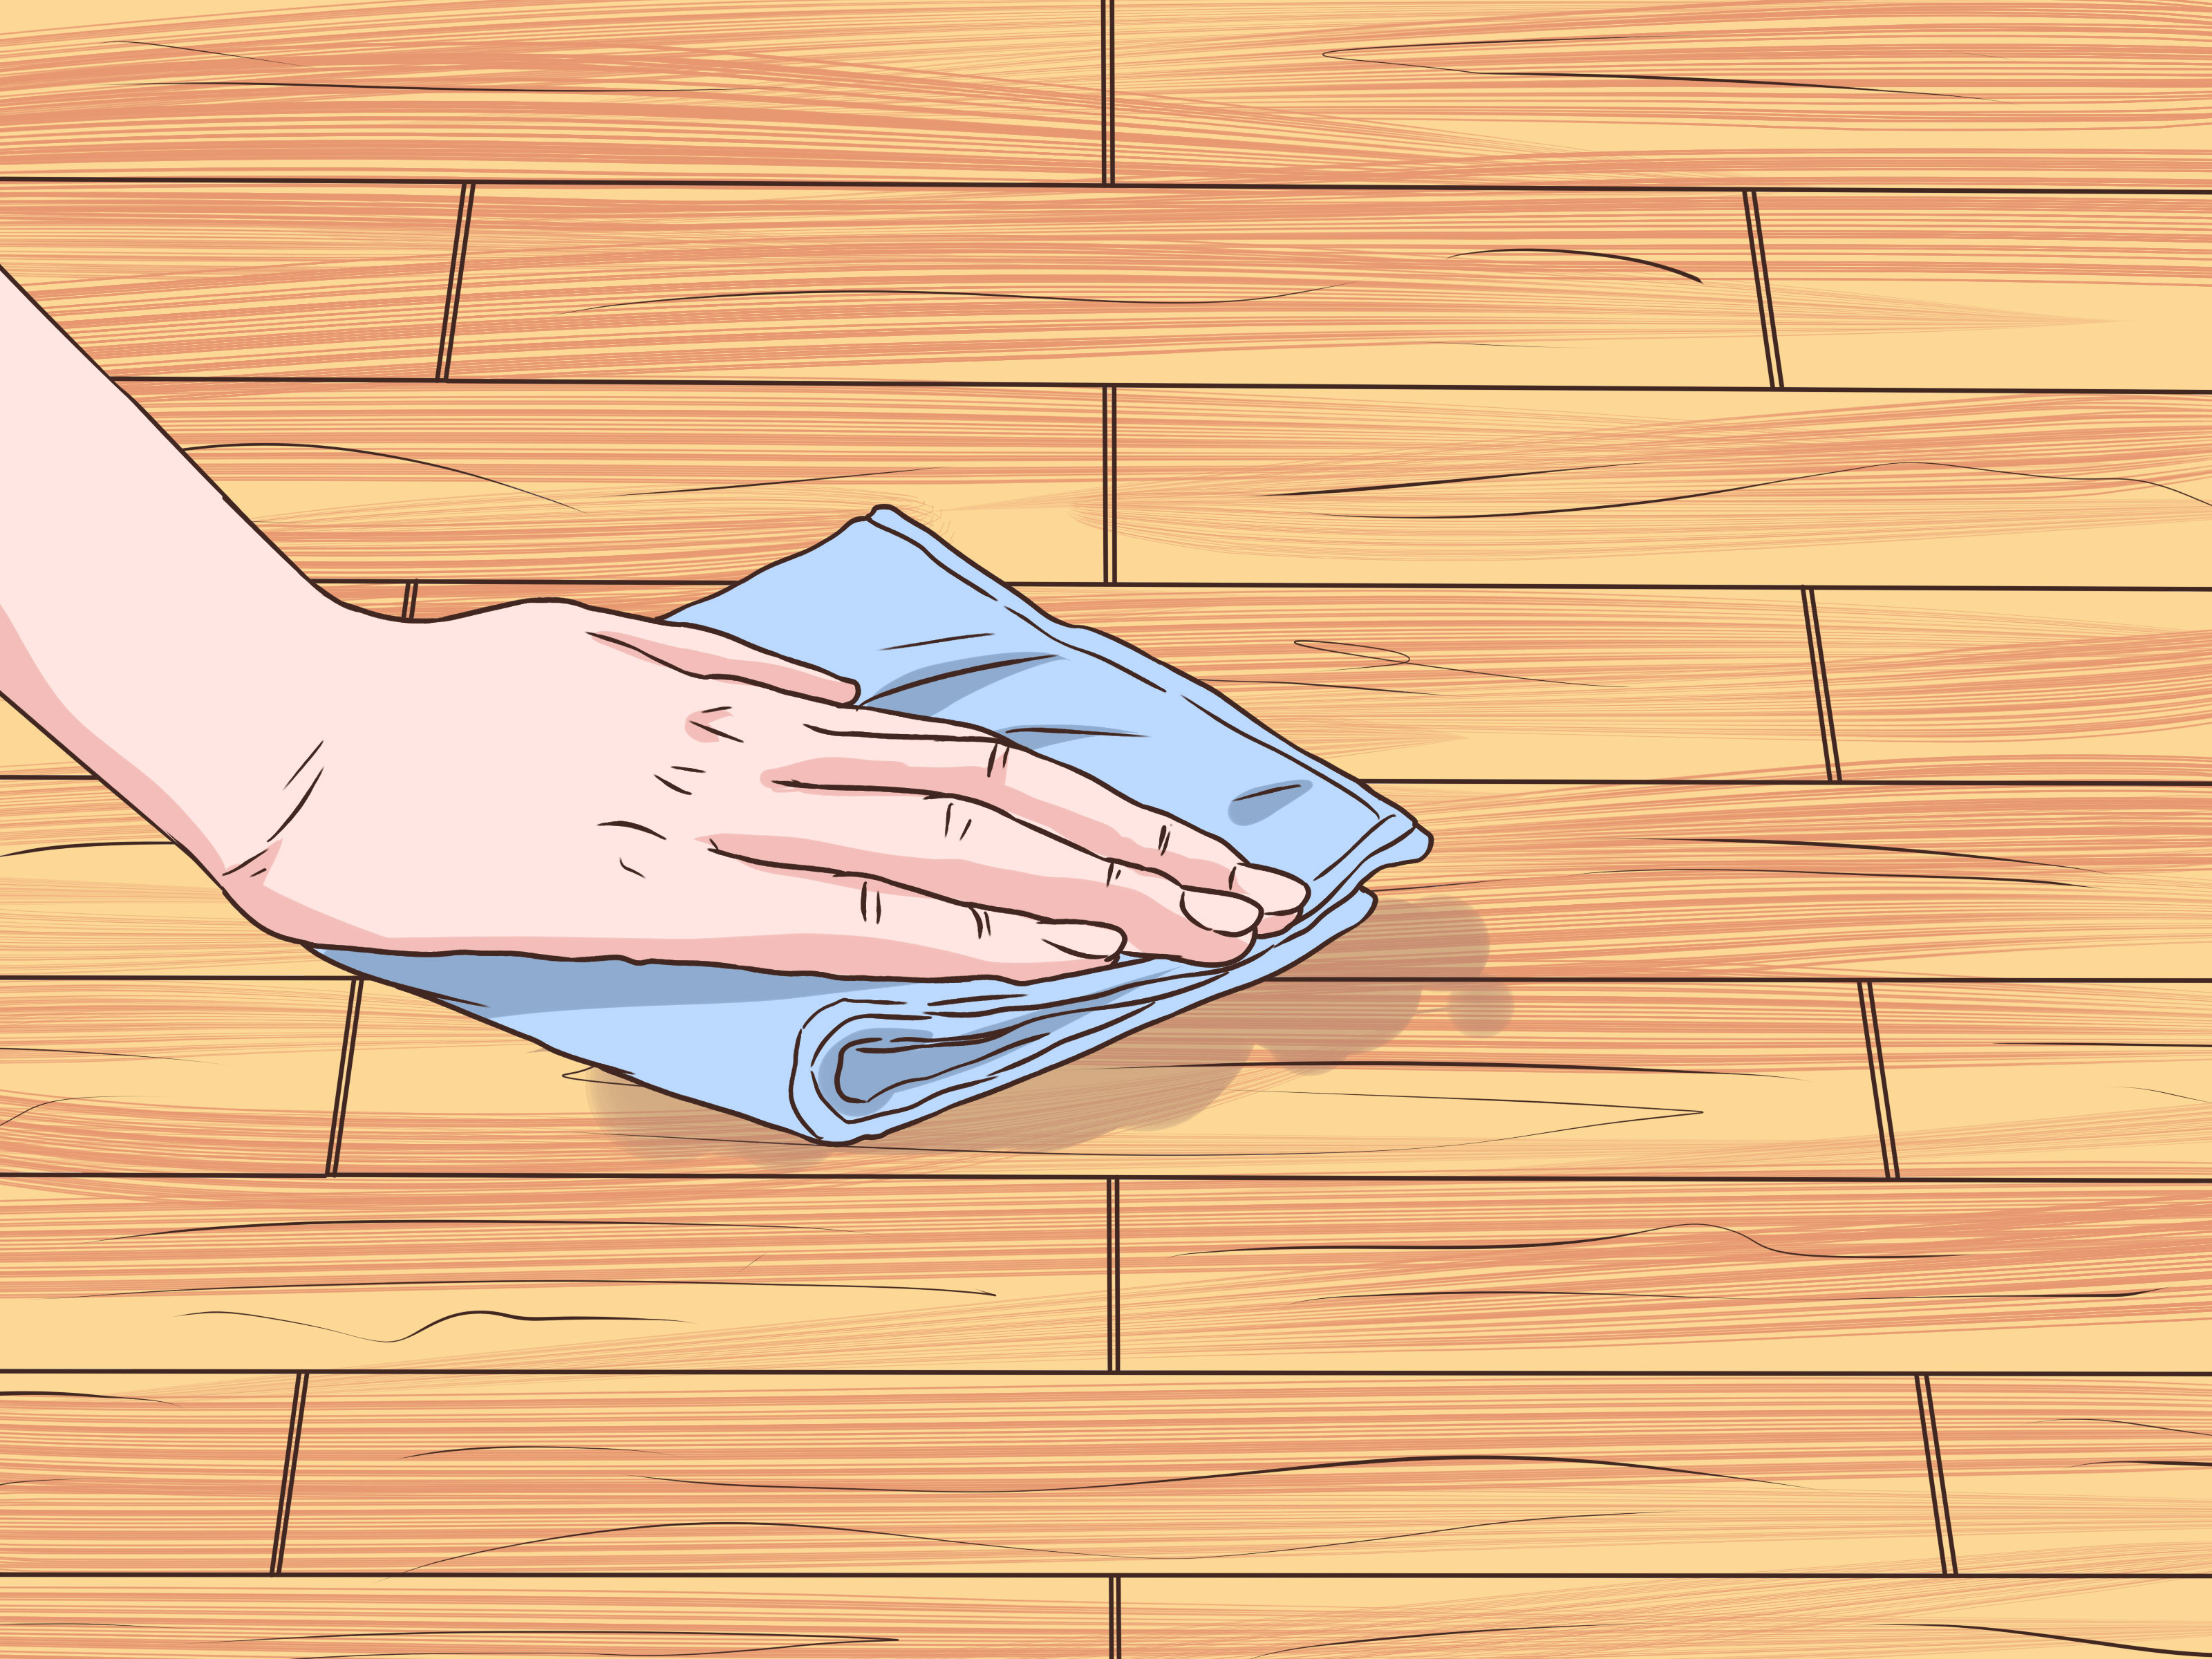 the woods company hardwood flooring of how to clean sticky hardwood floors 9 steps with pictures with regard to clean sticky hardwood floors step 9